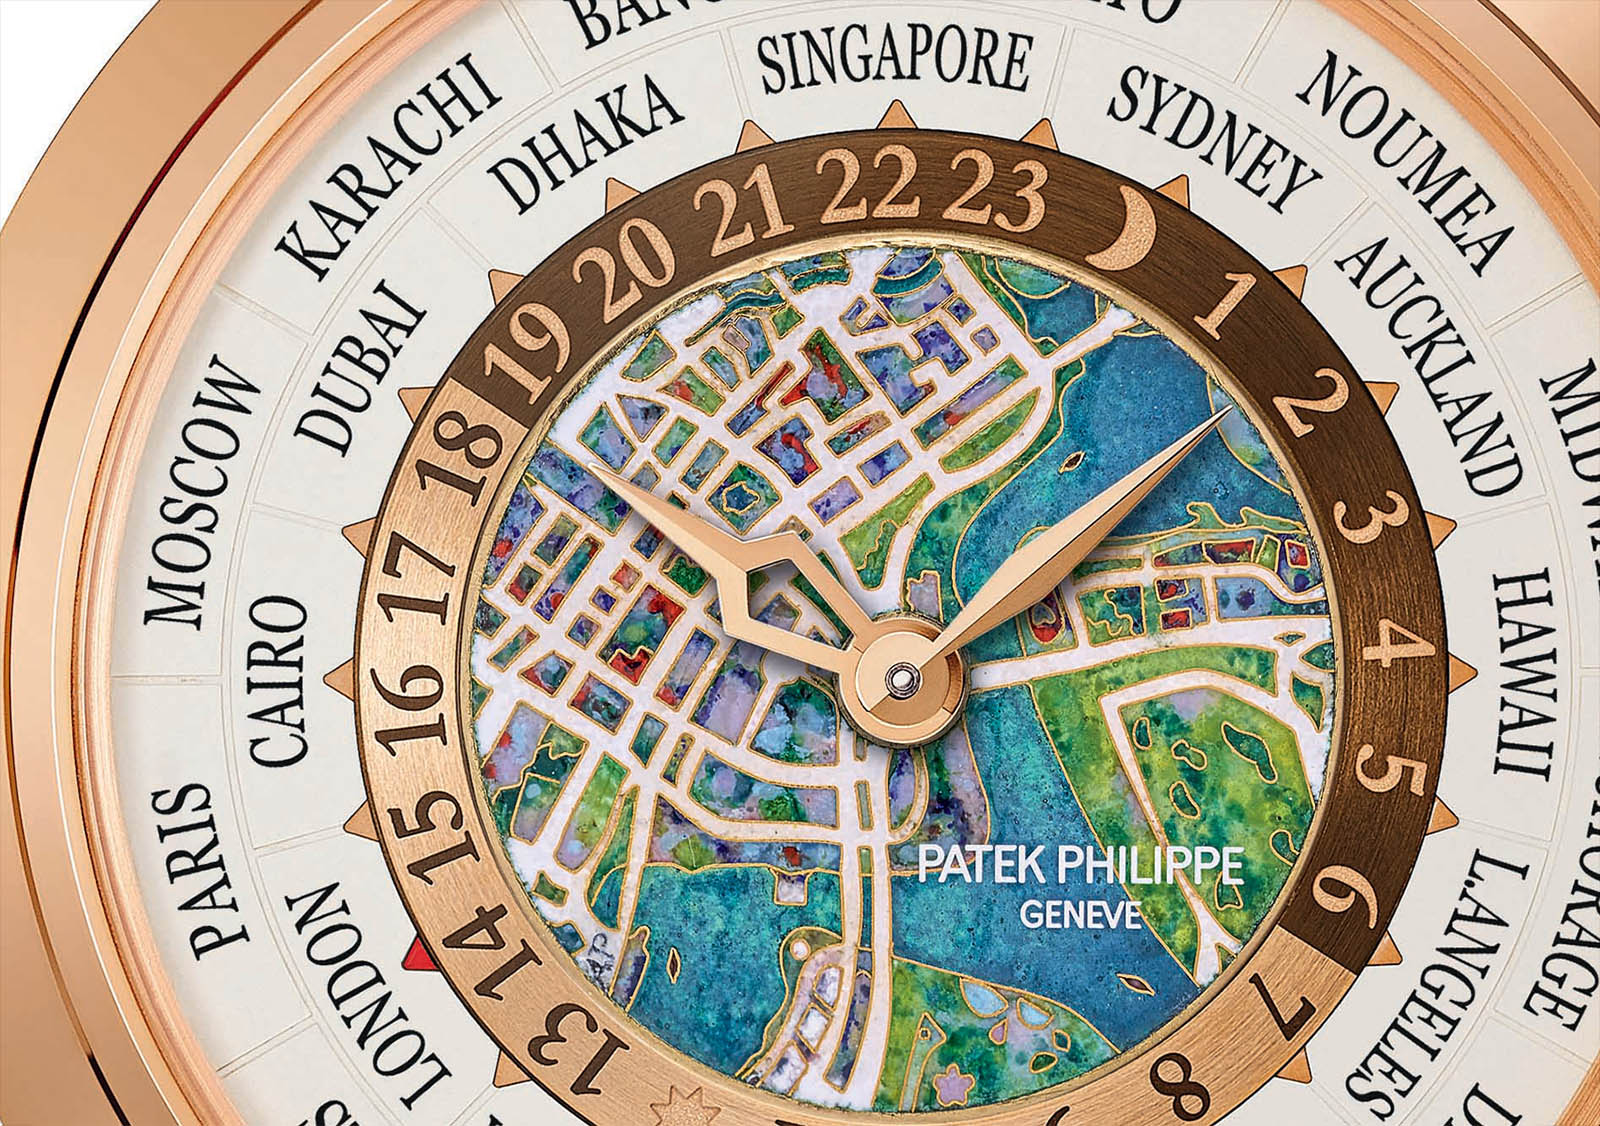 Patek Philippe_World Time Minute Repeater Singapore 2019 Ref. 5531R